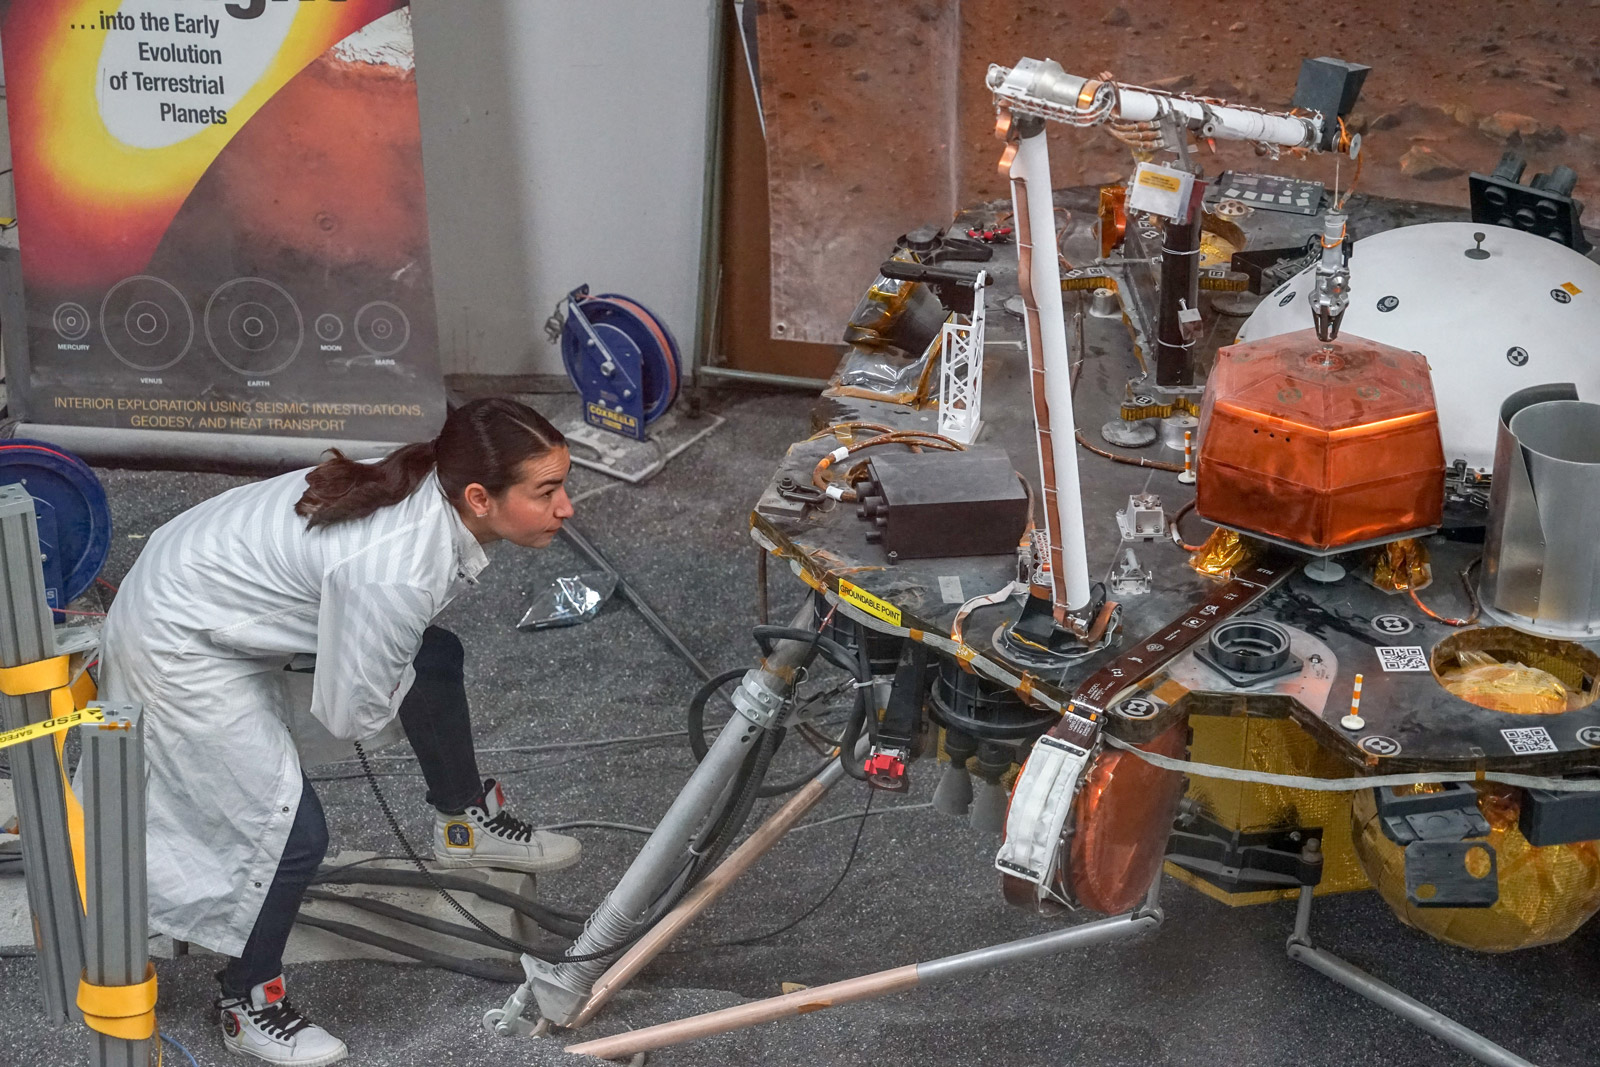 Engineer Marleen Sundgaard watches as the robotic arm on a test version of NASA's Mars InSight lander grasps a model of the spacecraft's seismometer. This work was done at NASA's Jet Propulsion Laboratory in Pasadena, California.